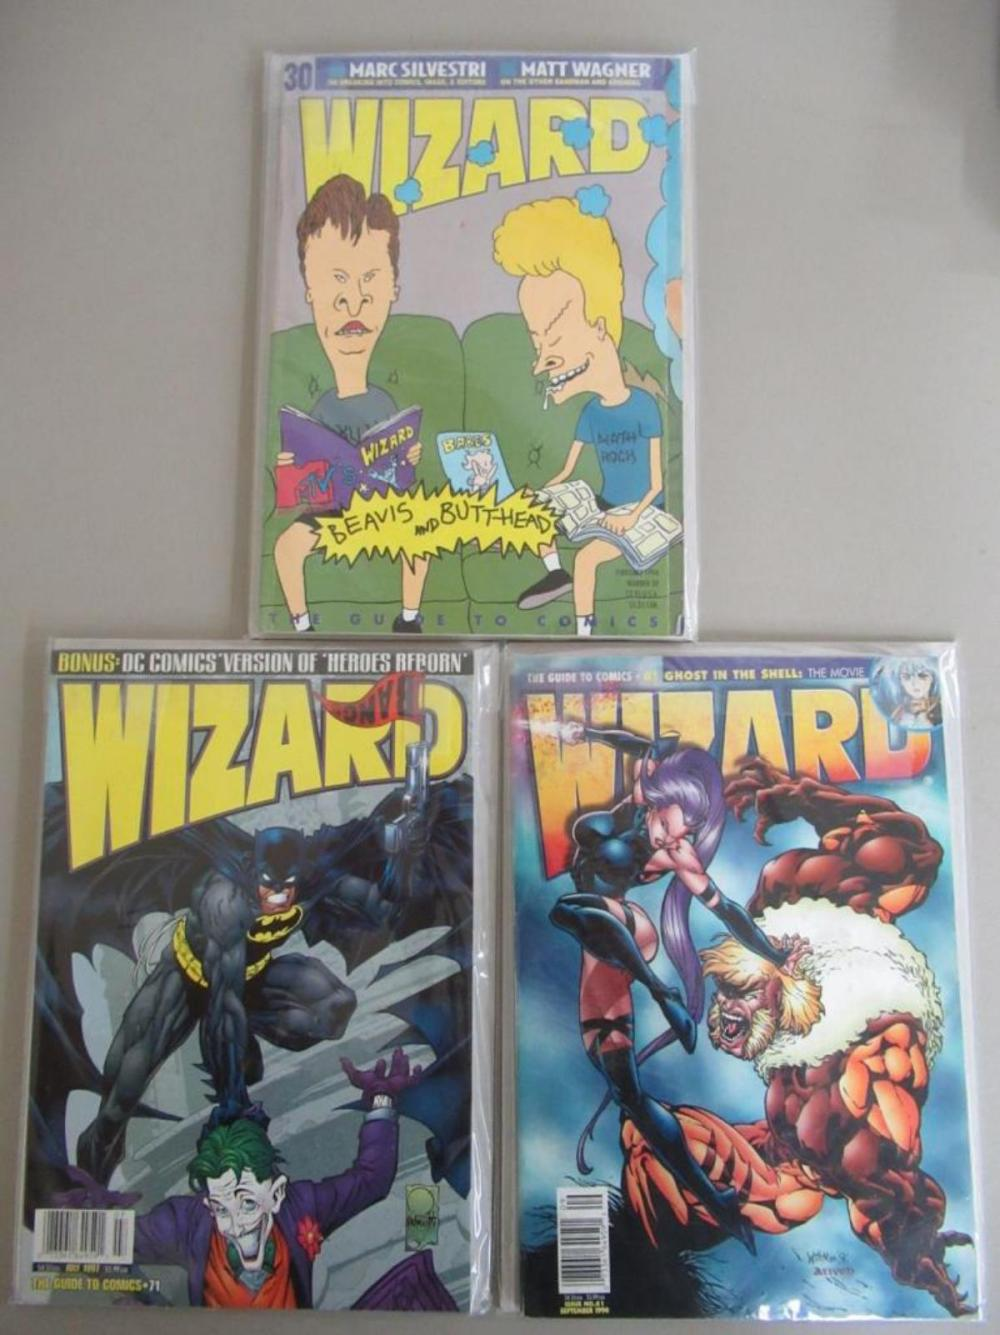 3 Wizard Graphic Novels #30, 61, 71